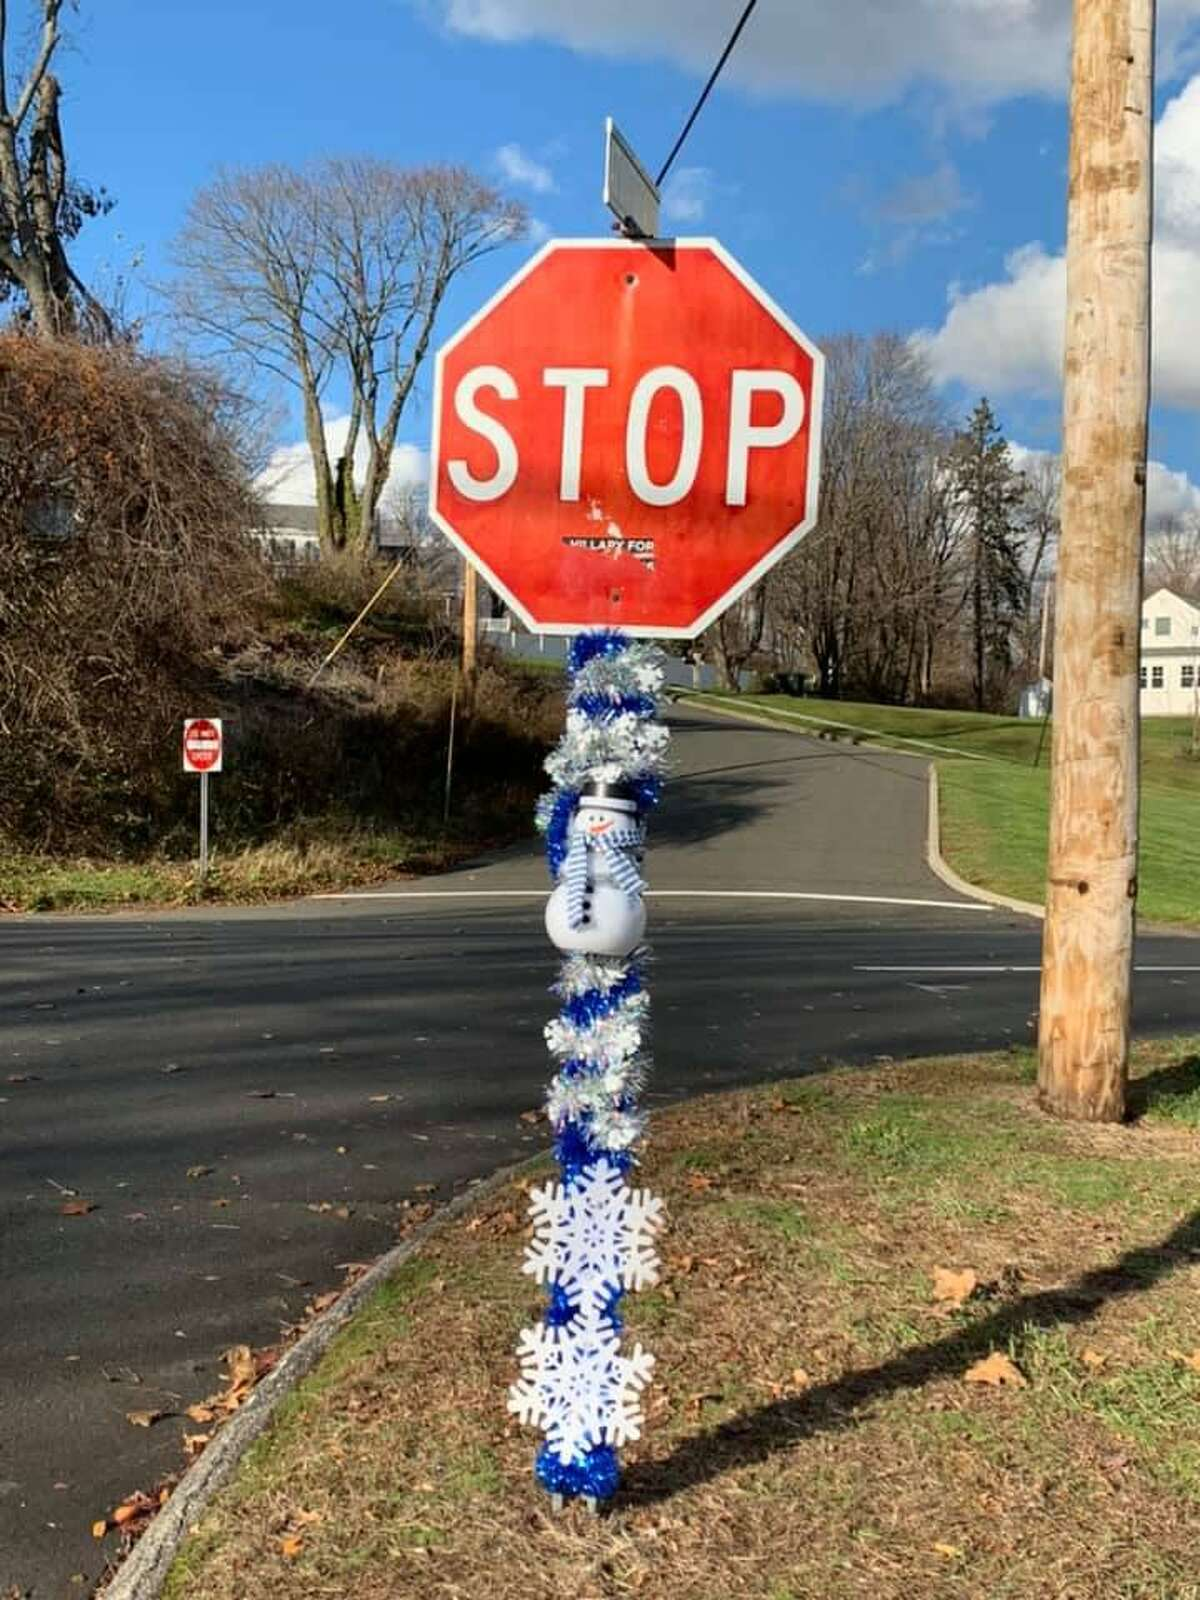 As part of an initiative called #milfordchallenge, street signs are being decorated for the holidays. Police, though, caution that the signs are city property and placing anything on them is illegal.